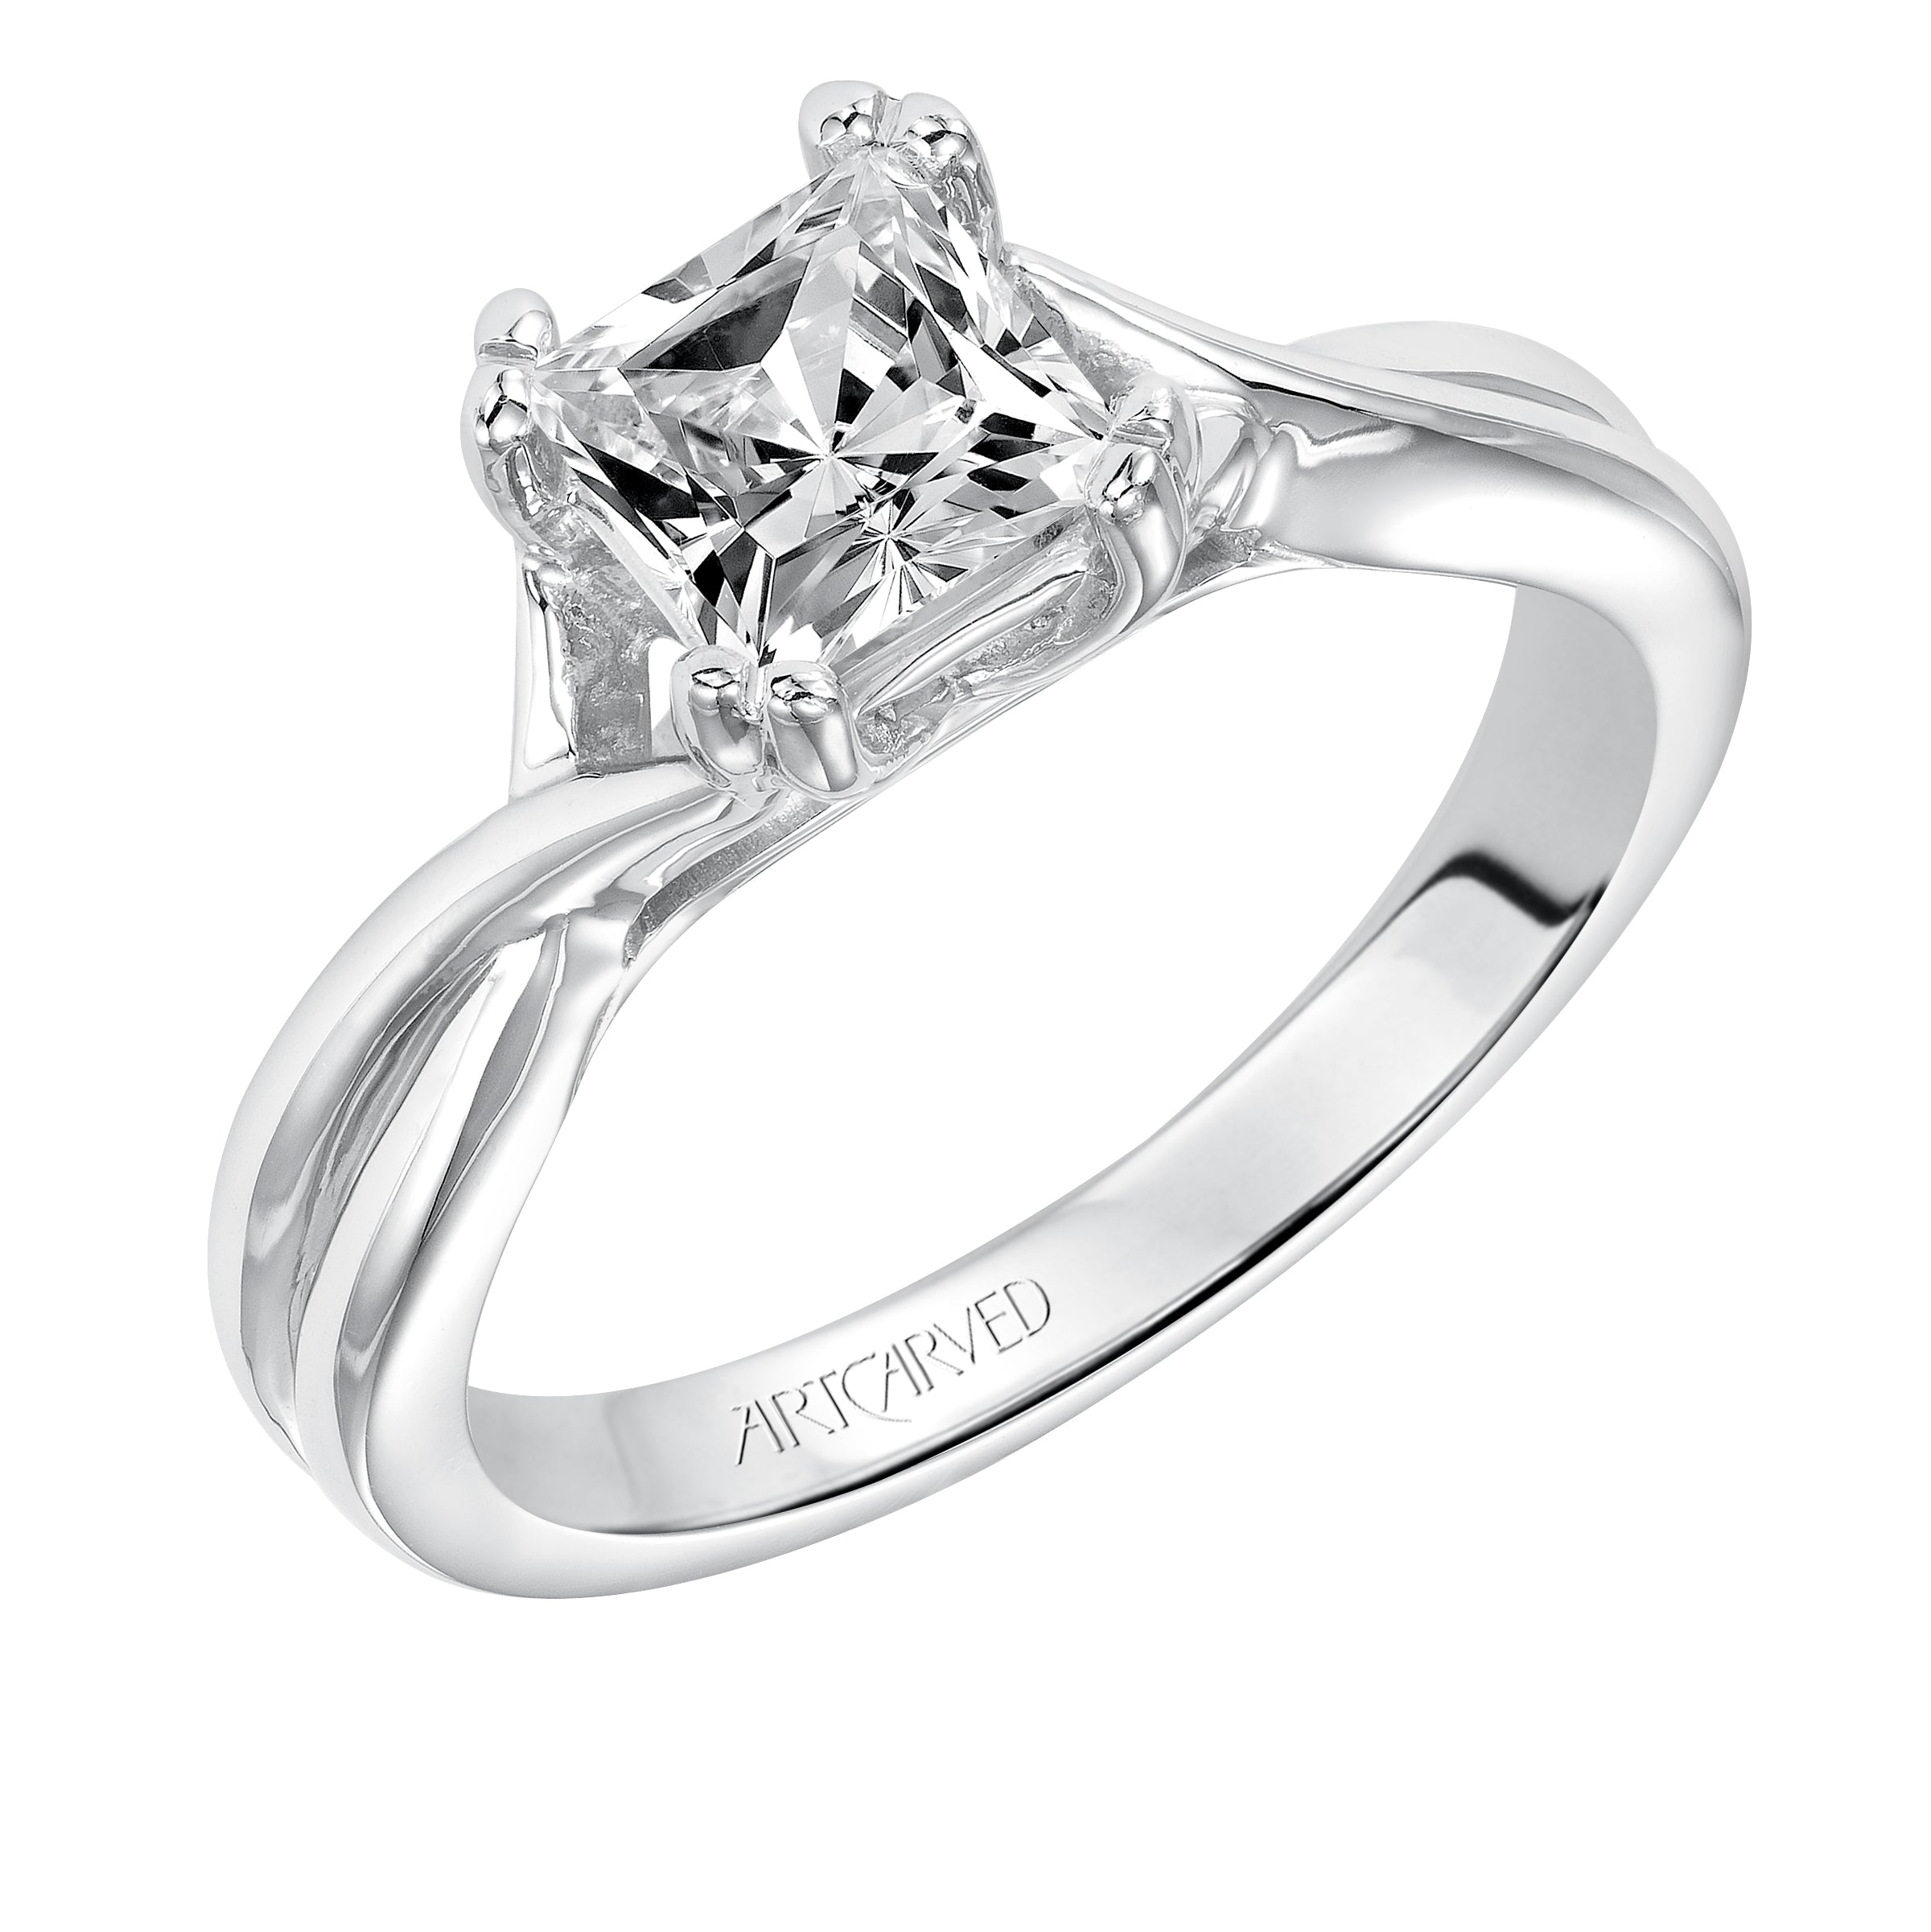 my wedding band reference engagement twisted below stack or above set topic for rings ering